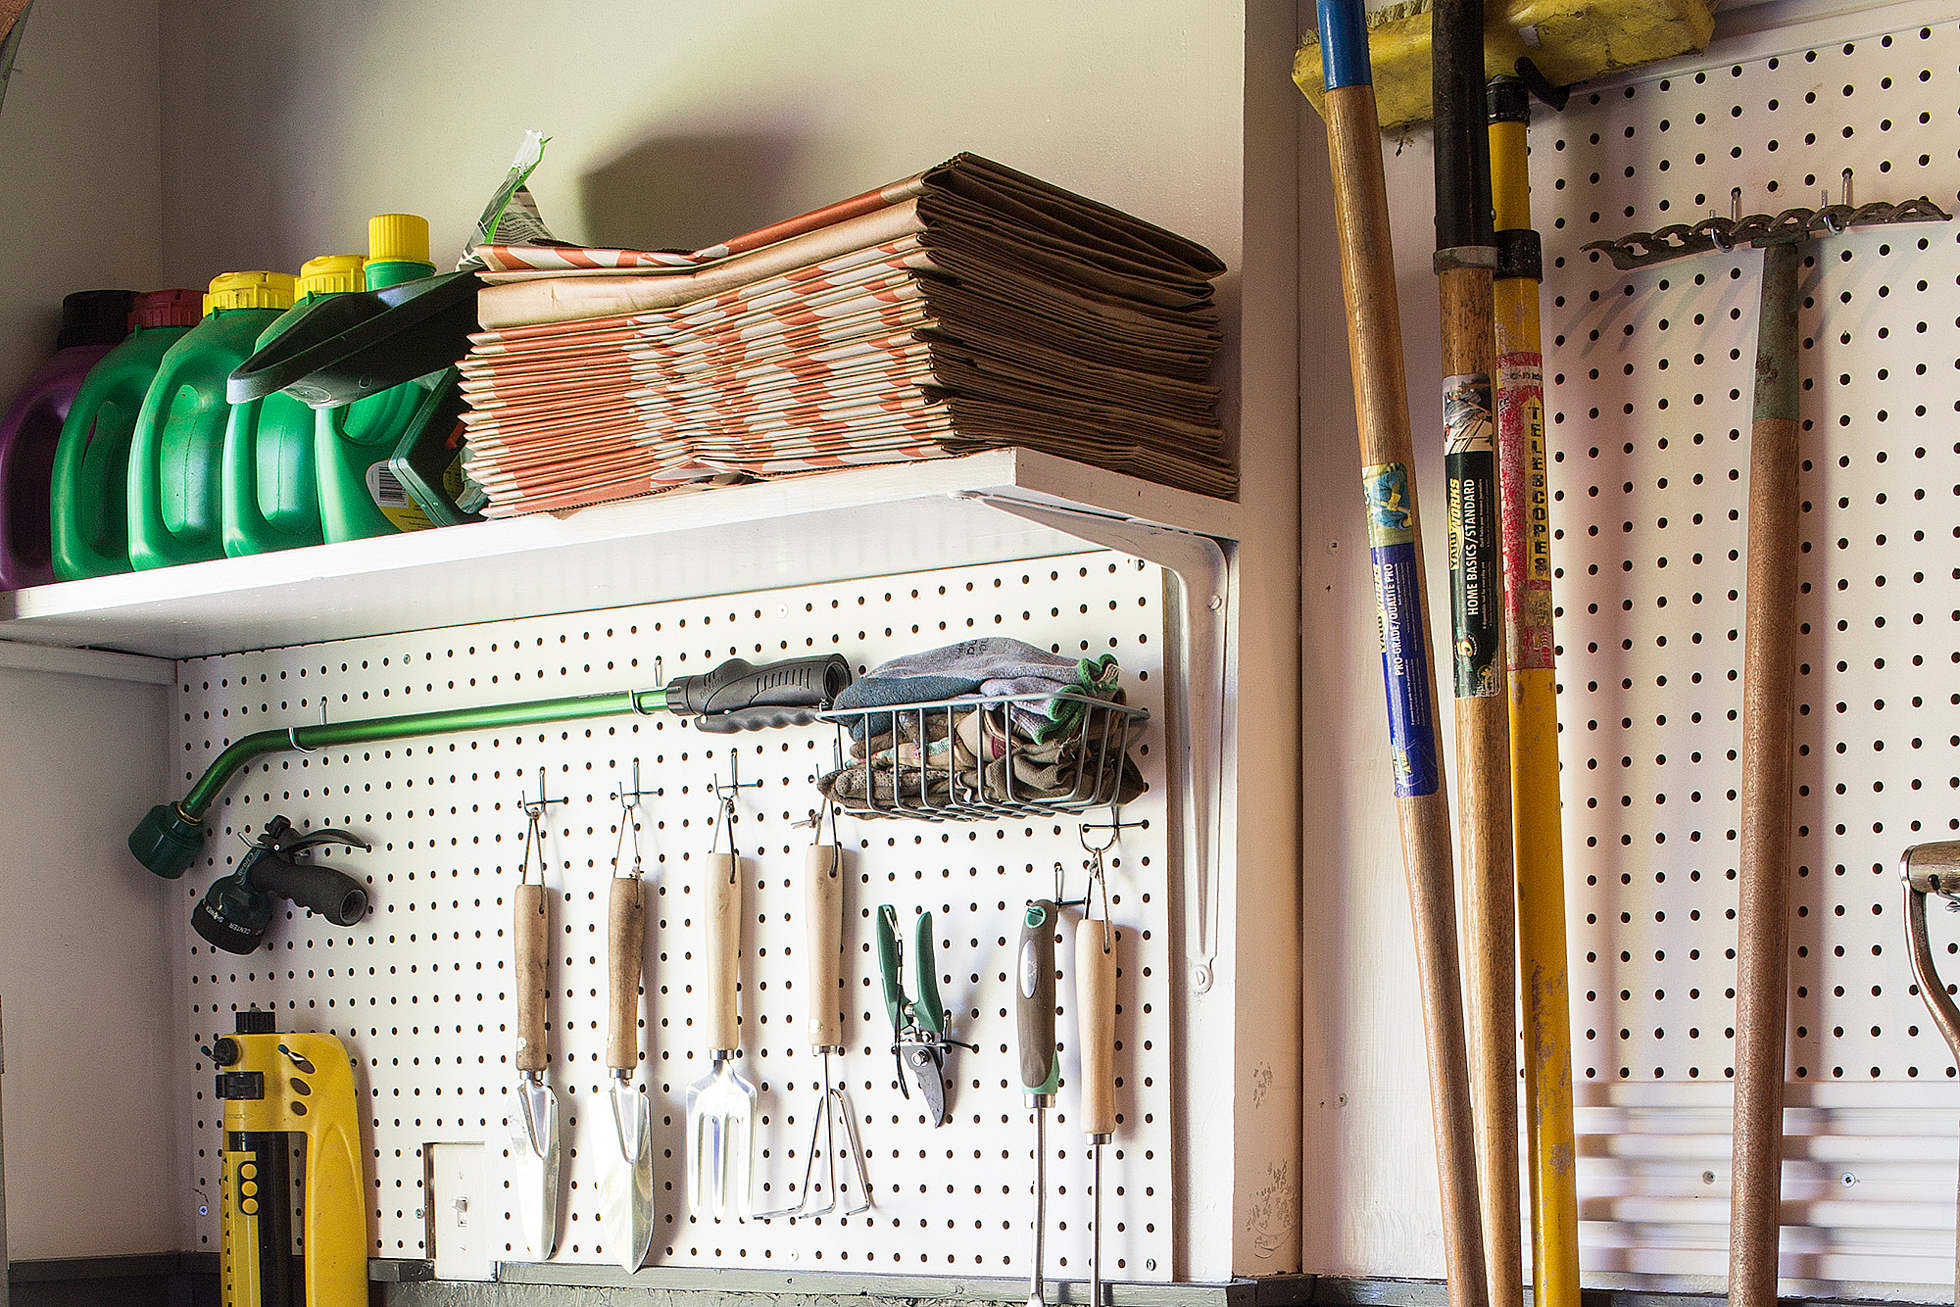 A white pegboard with hanging tools in a garage